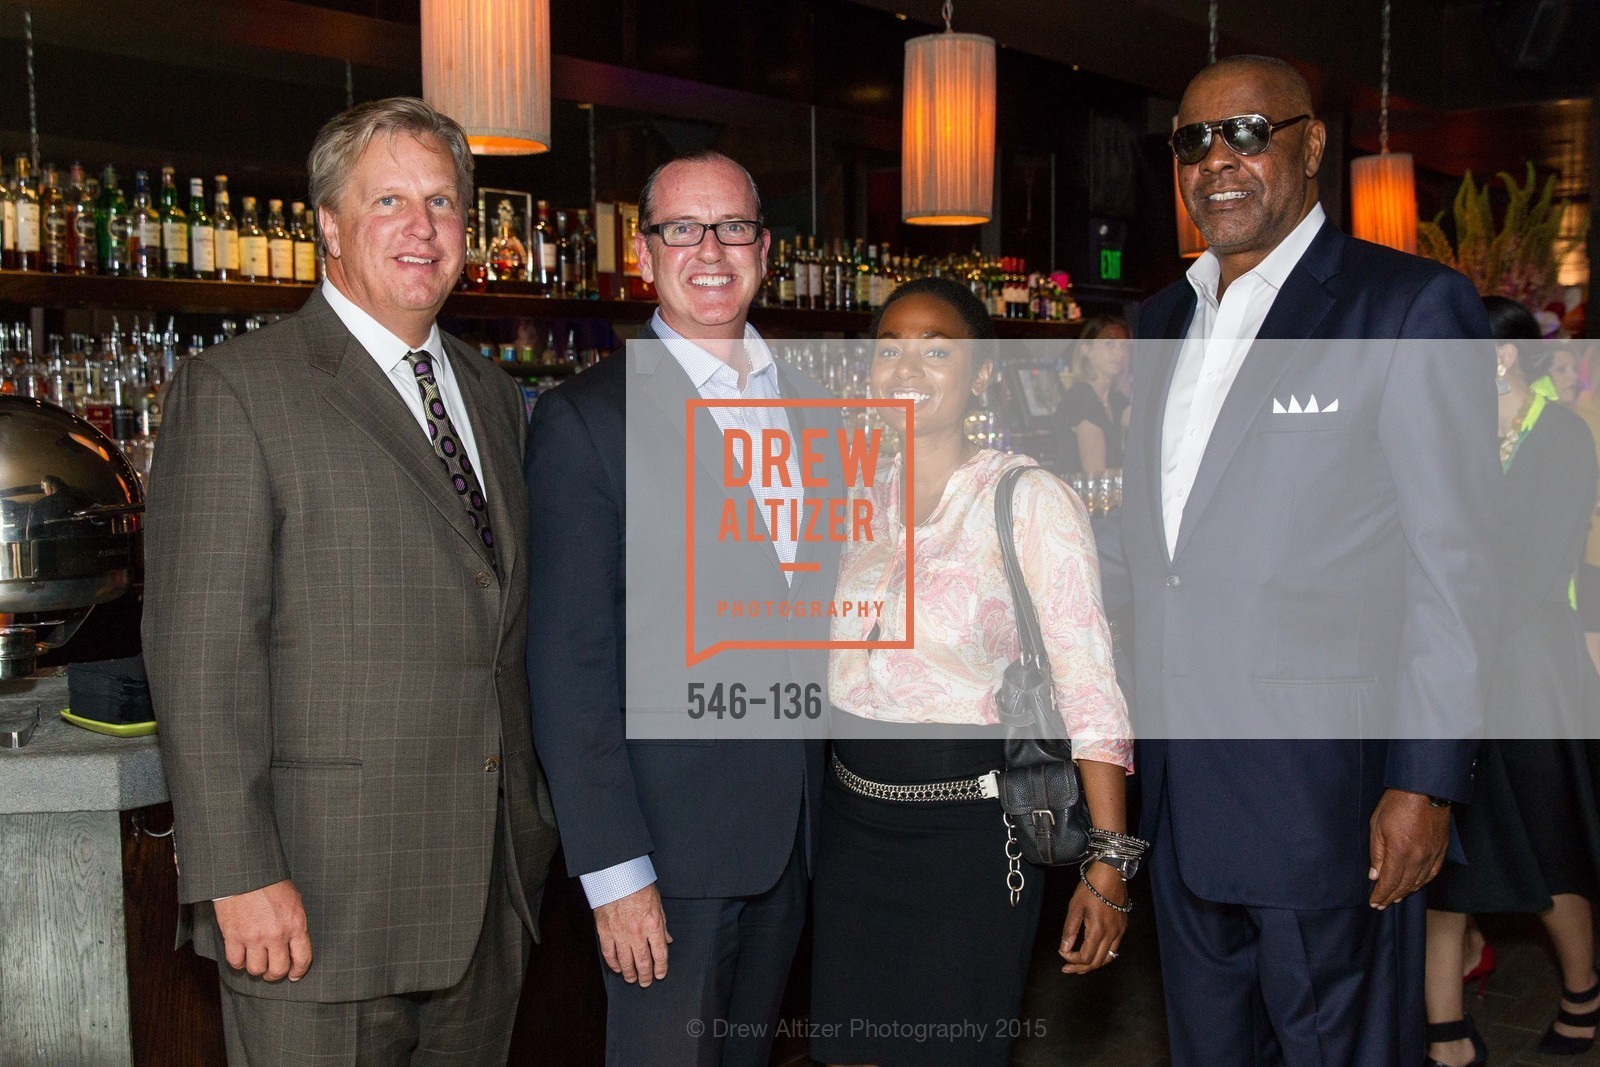 Michael Mohrrman, Joseph Deery, Keysha Bailey, Michael Baines,  Inspired Luxe Launch Party hosted by Denise Bradley-Tyson, MatrixFillmore, May 27th, 2015,Drew Altizer, Drew Altizer Photography, full-service agency, private events, San Francisco photographer, photographer california